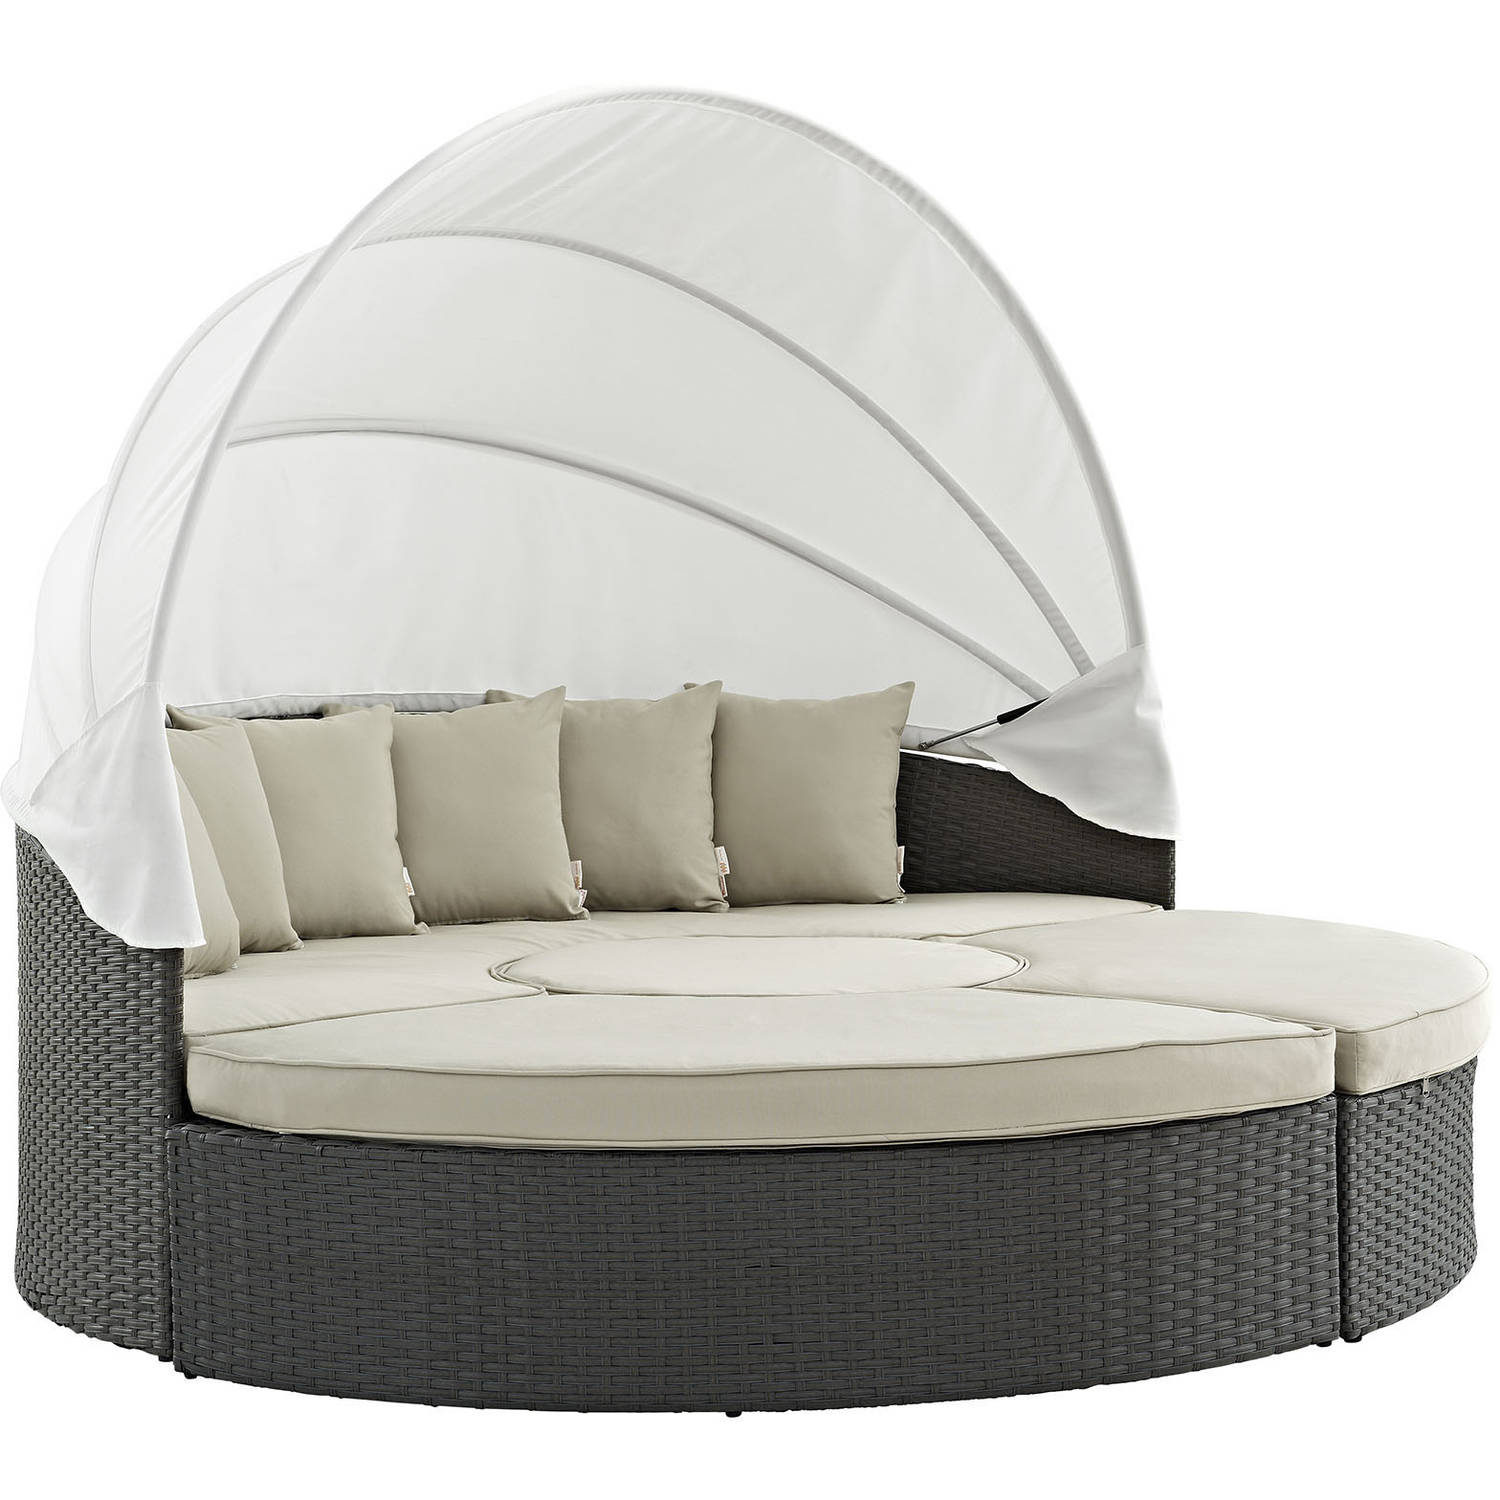 Modway Sojourn Outdoor Patio Sunbrella Canopy Daybed Multiple Colors  sc 1 st  Walmart & Modway Sojourn Outdoor Patio Sunbrella Canopy Daybed Multiple ...